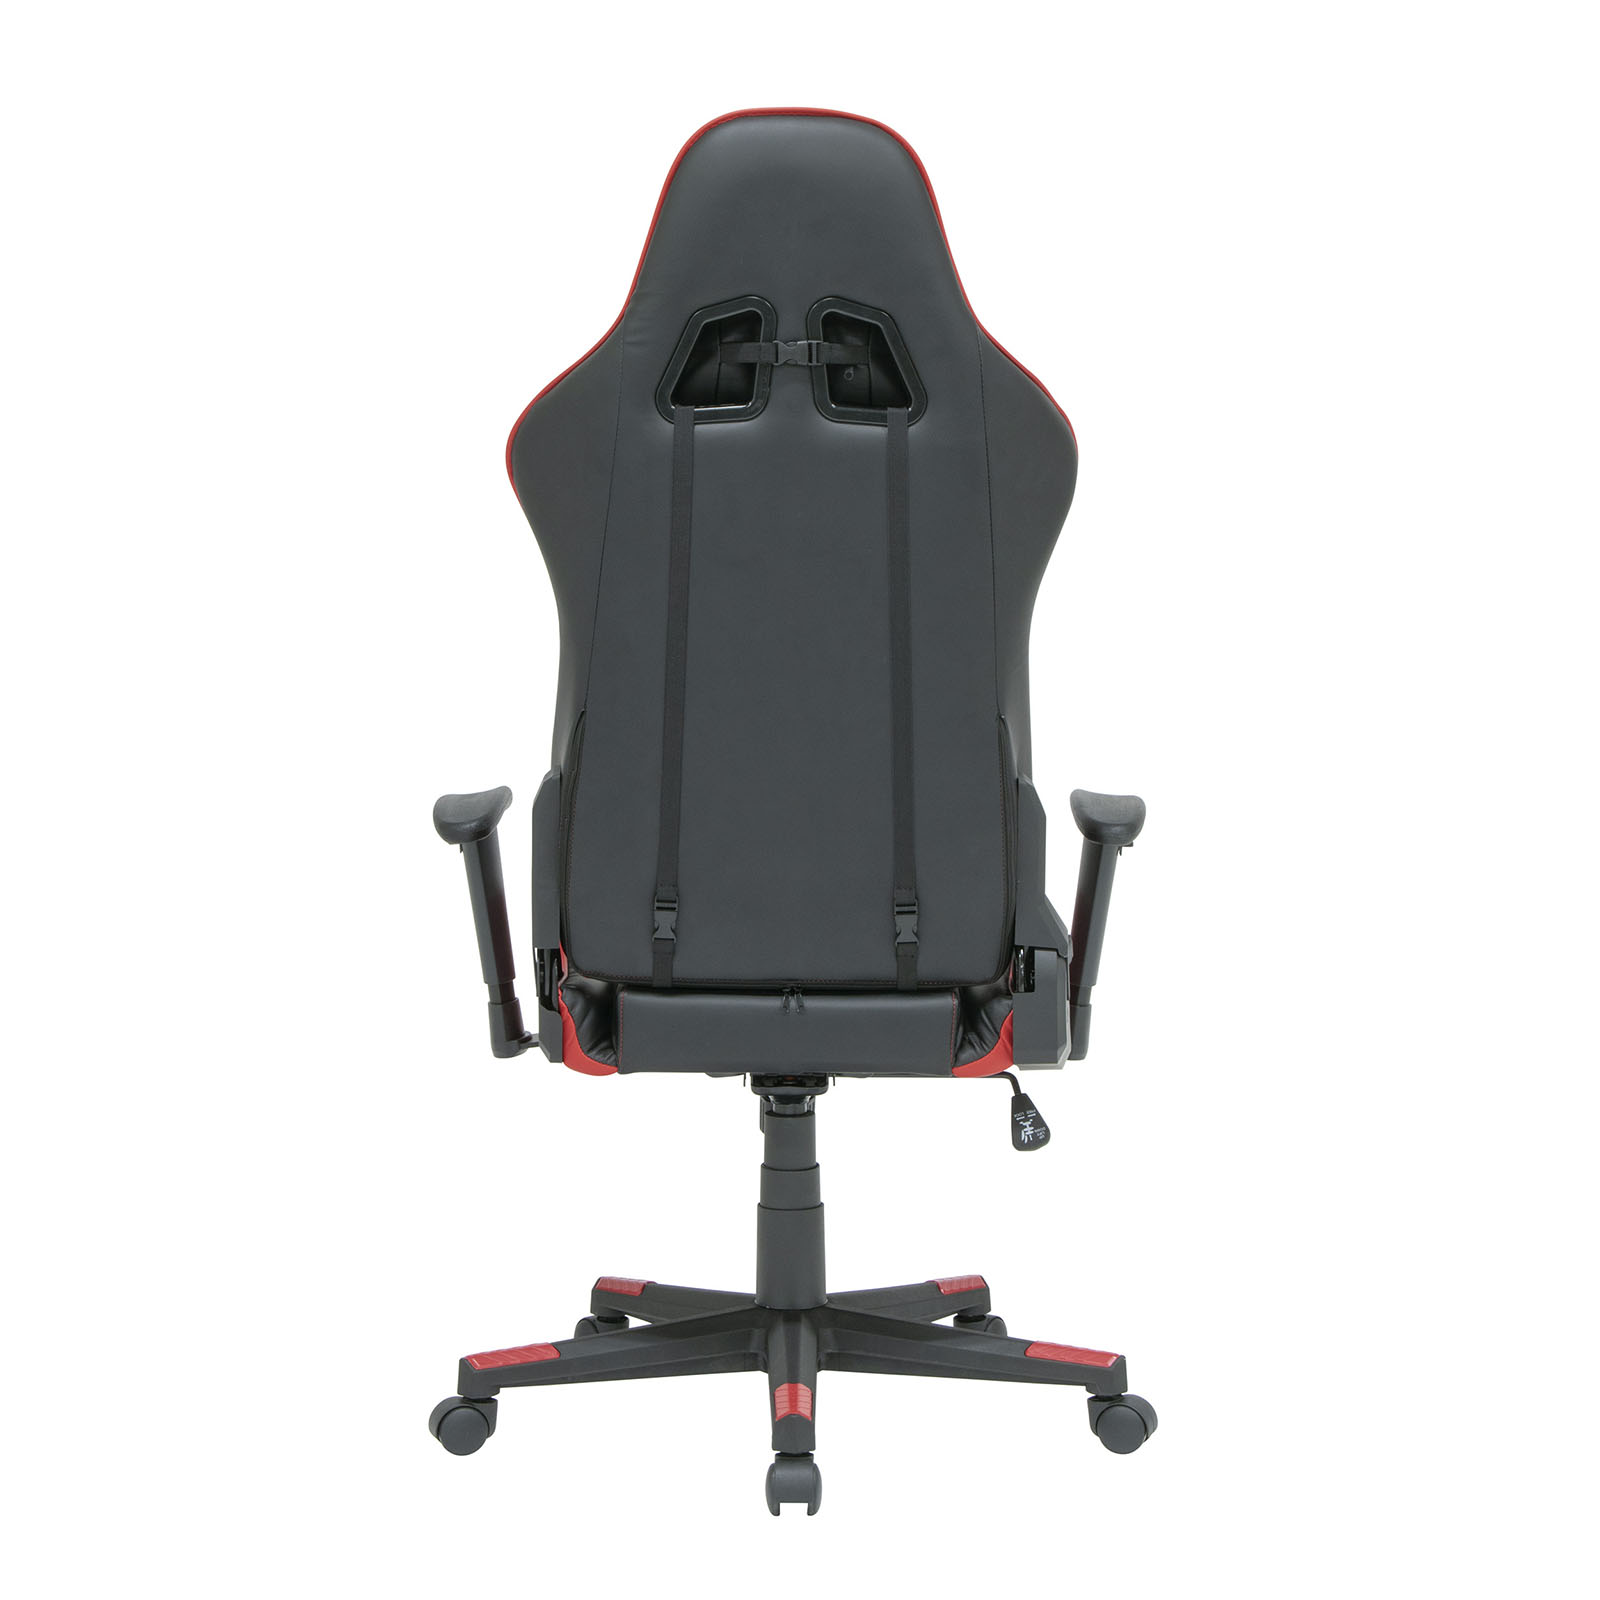 10660 High Back Gaming Chair rear